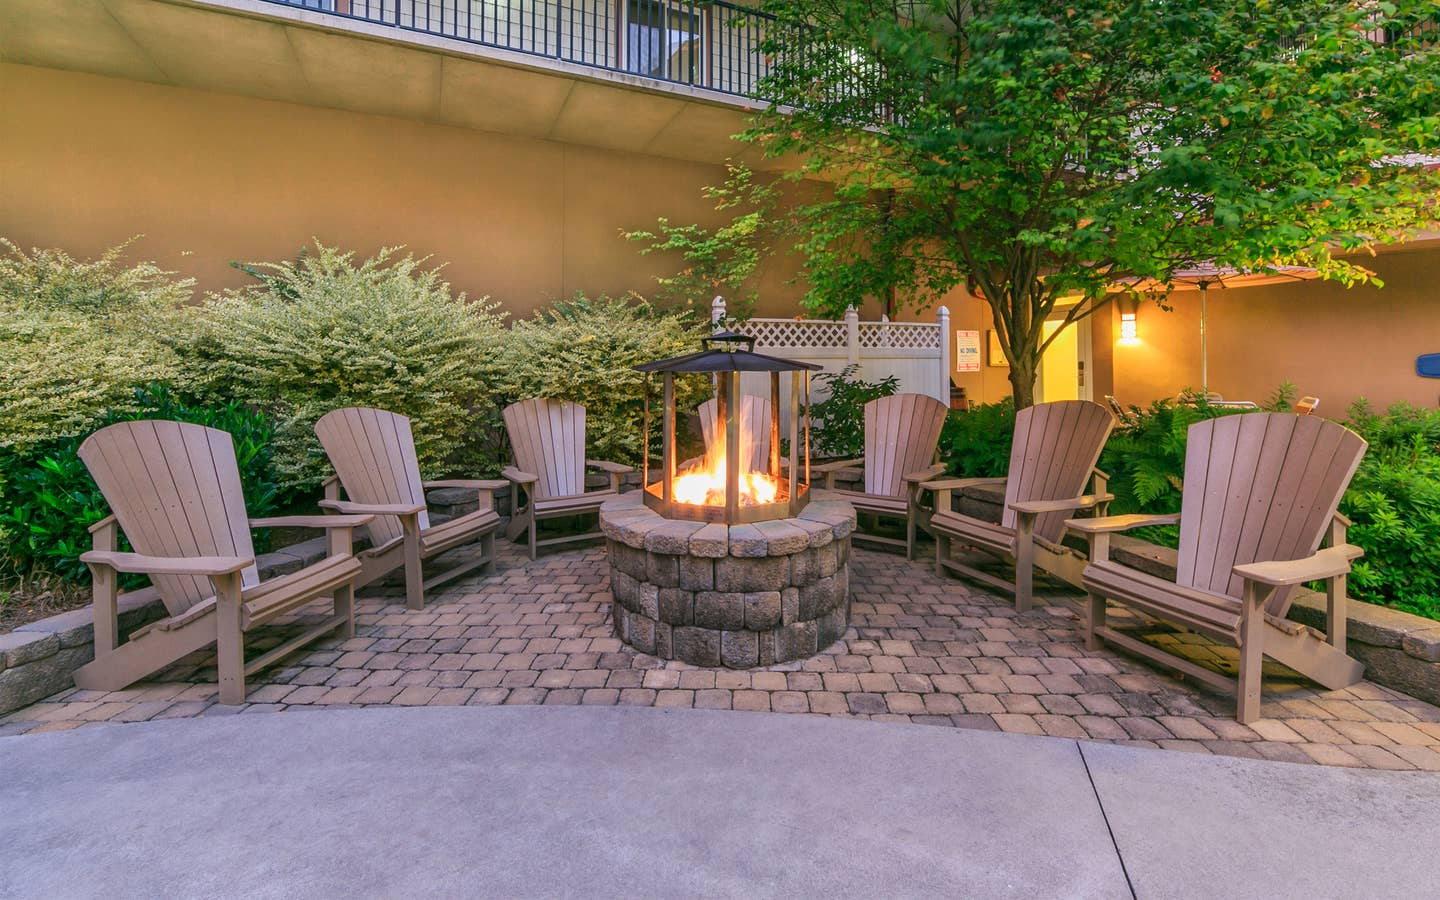 The fire pit at Smoky Mountain Resort